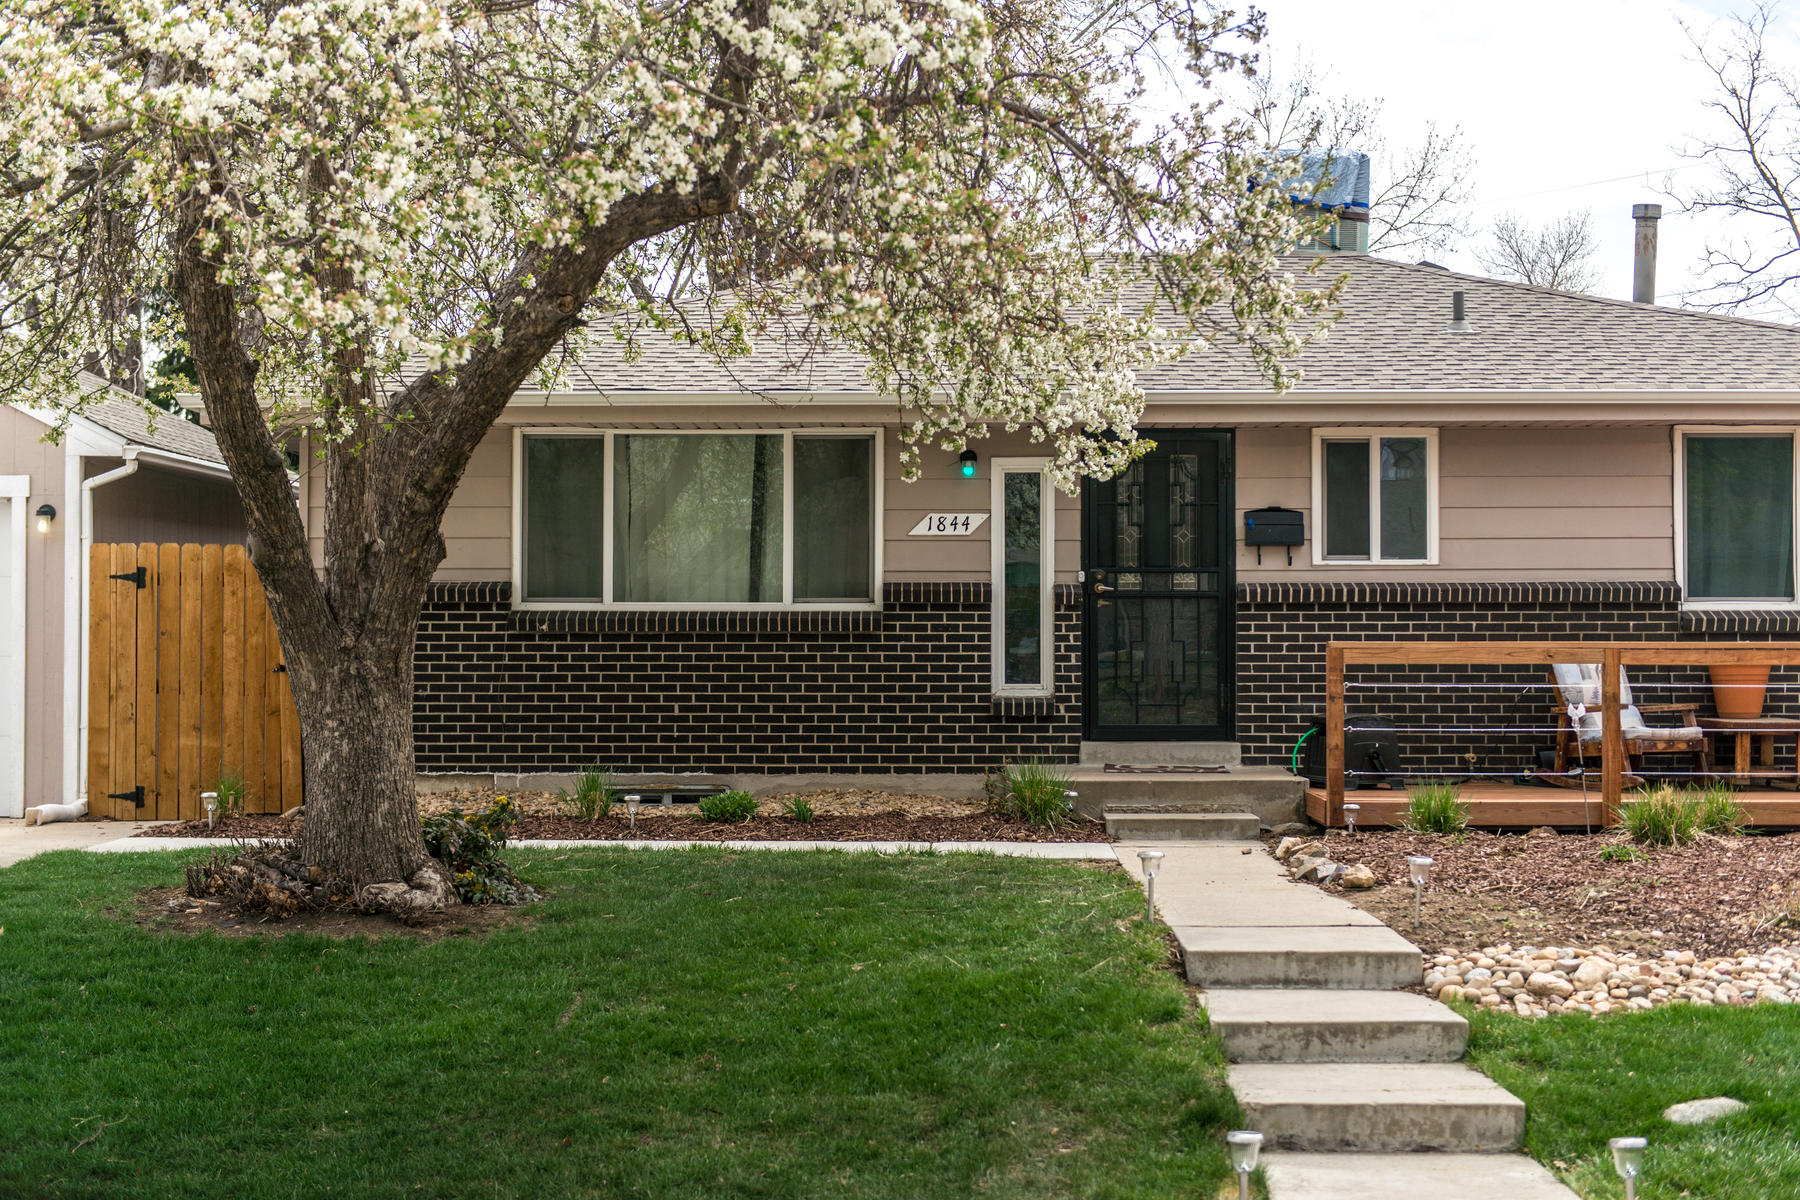 Single Family Home for Active at Cloverdale West 1844 S Dover Way Lakewood, Colorado 80232 United States